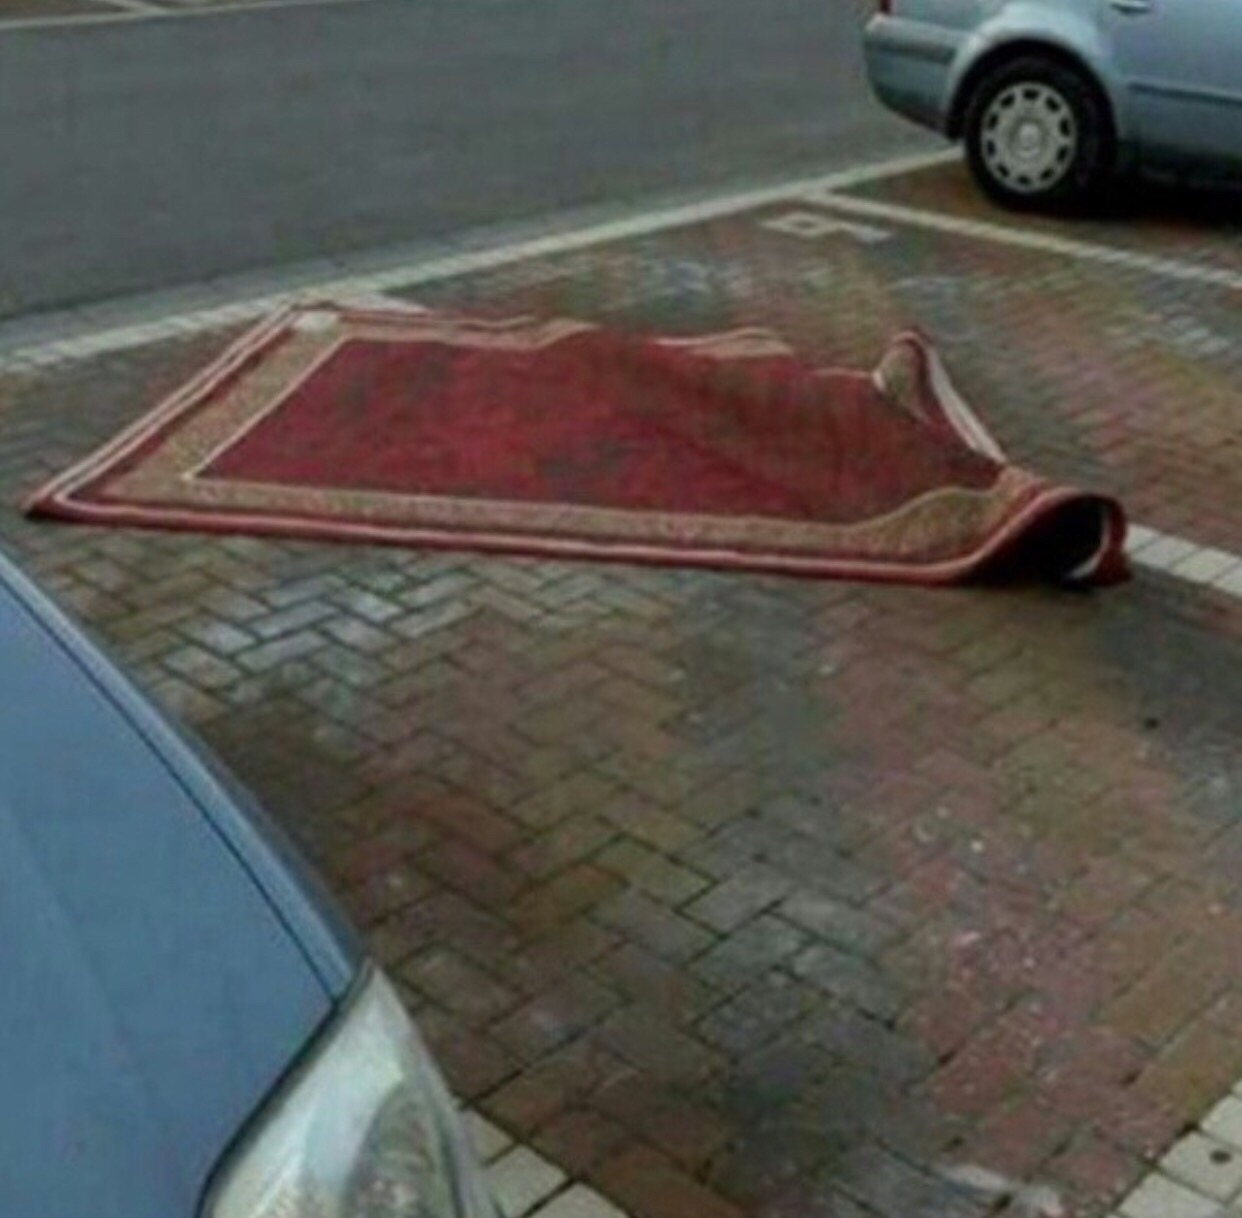 IRTI - funny picture #9026 - tags: Aladdin parking rug ...